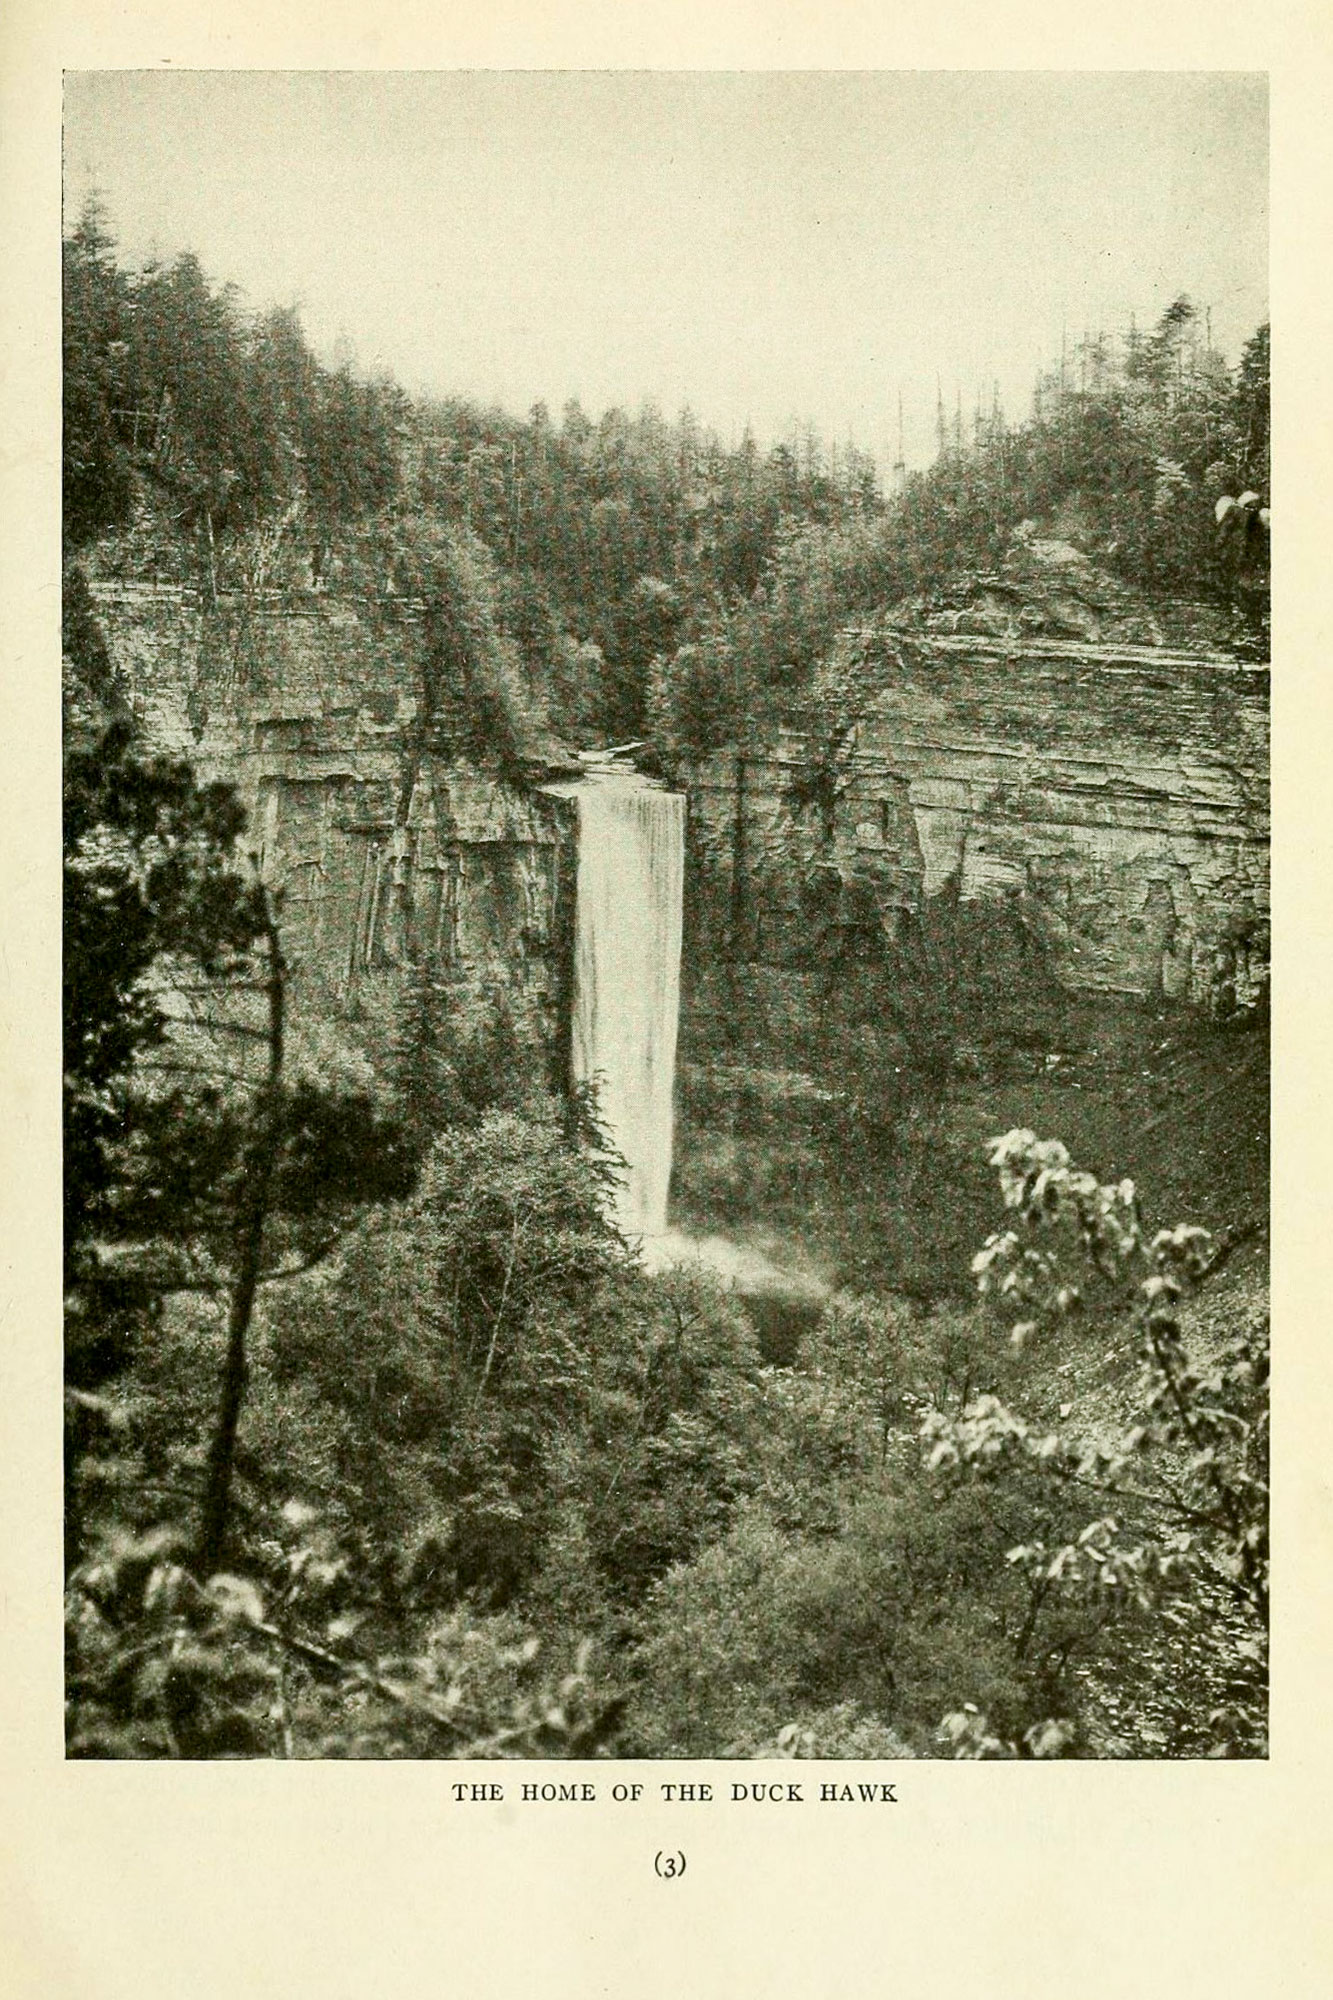 """Taughannock Falls pictured in """"The Duck Hawks of Taughannock Gorge"""" by Arthur A. Allen and H. K. Knight in a 1913 issue of Bird Lore magazine."""